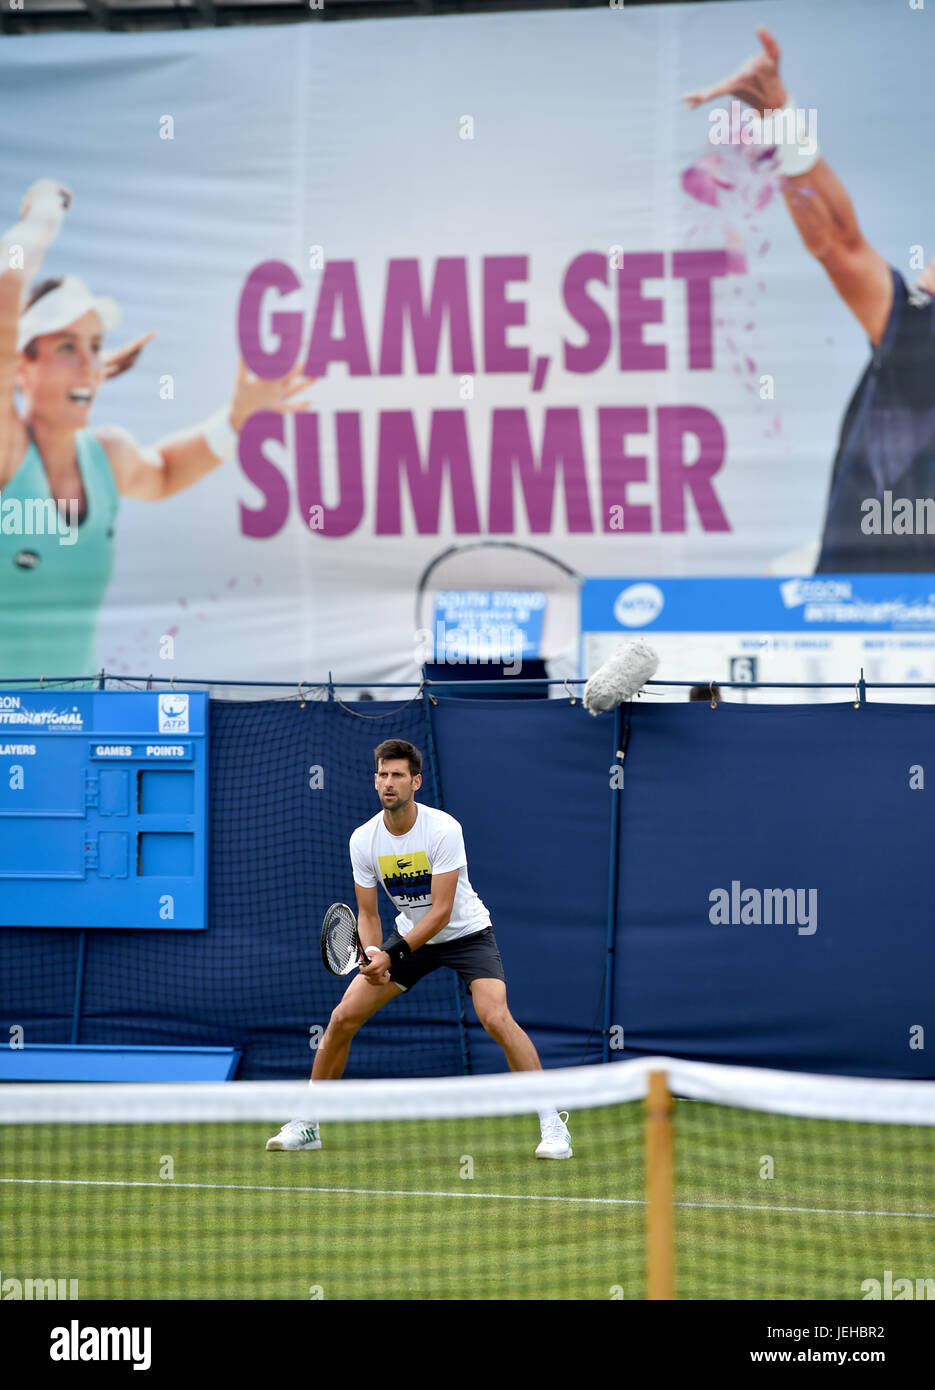 Novak Djokovic practicing at the Aegon International tennis tournament at Devonshire Park in Eastbourne East Sussex - Stock Image